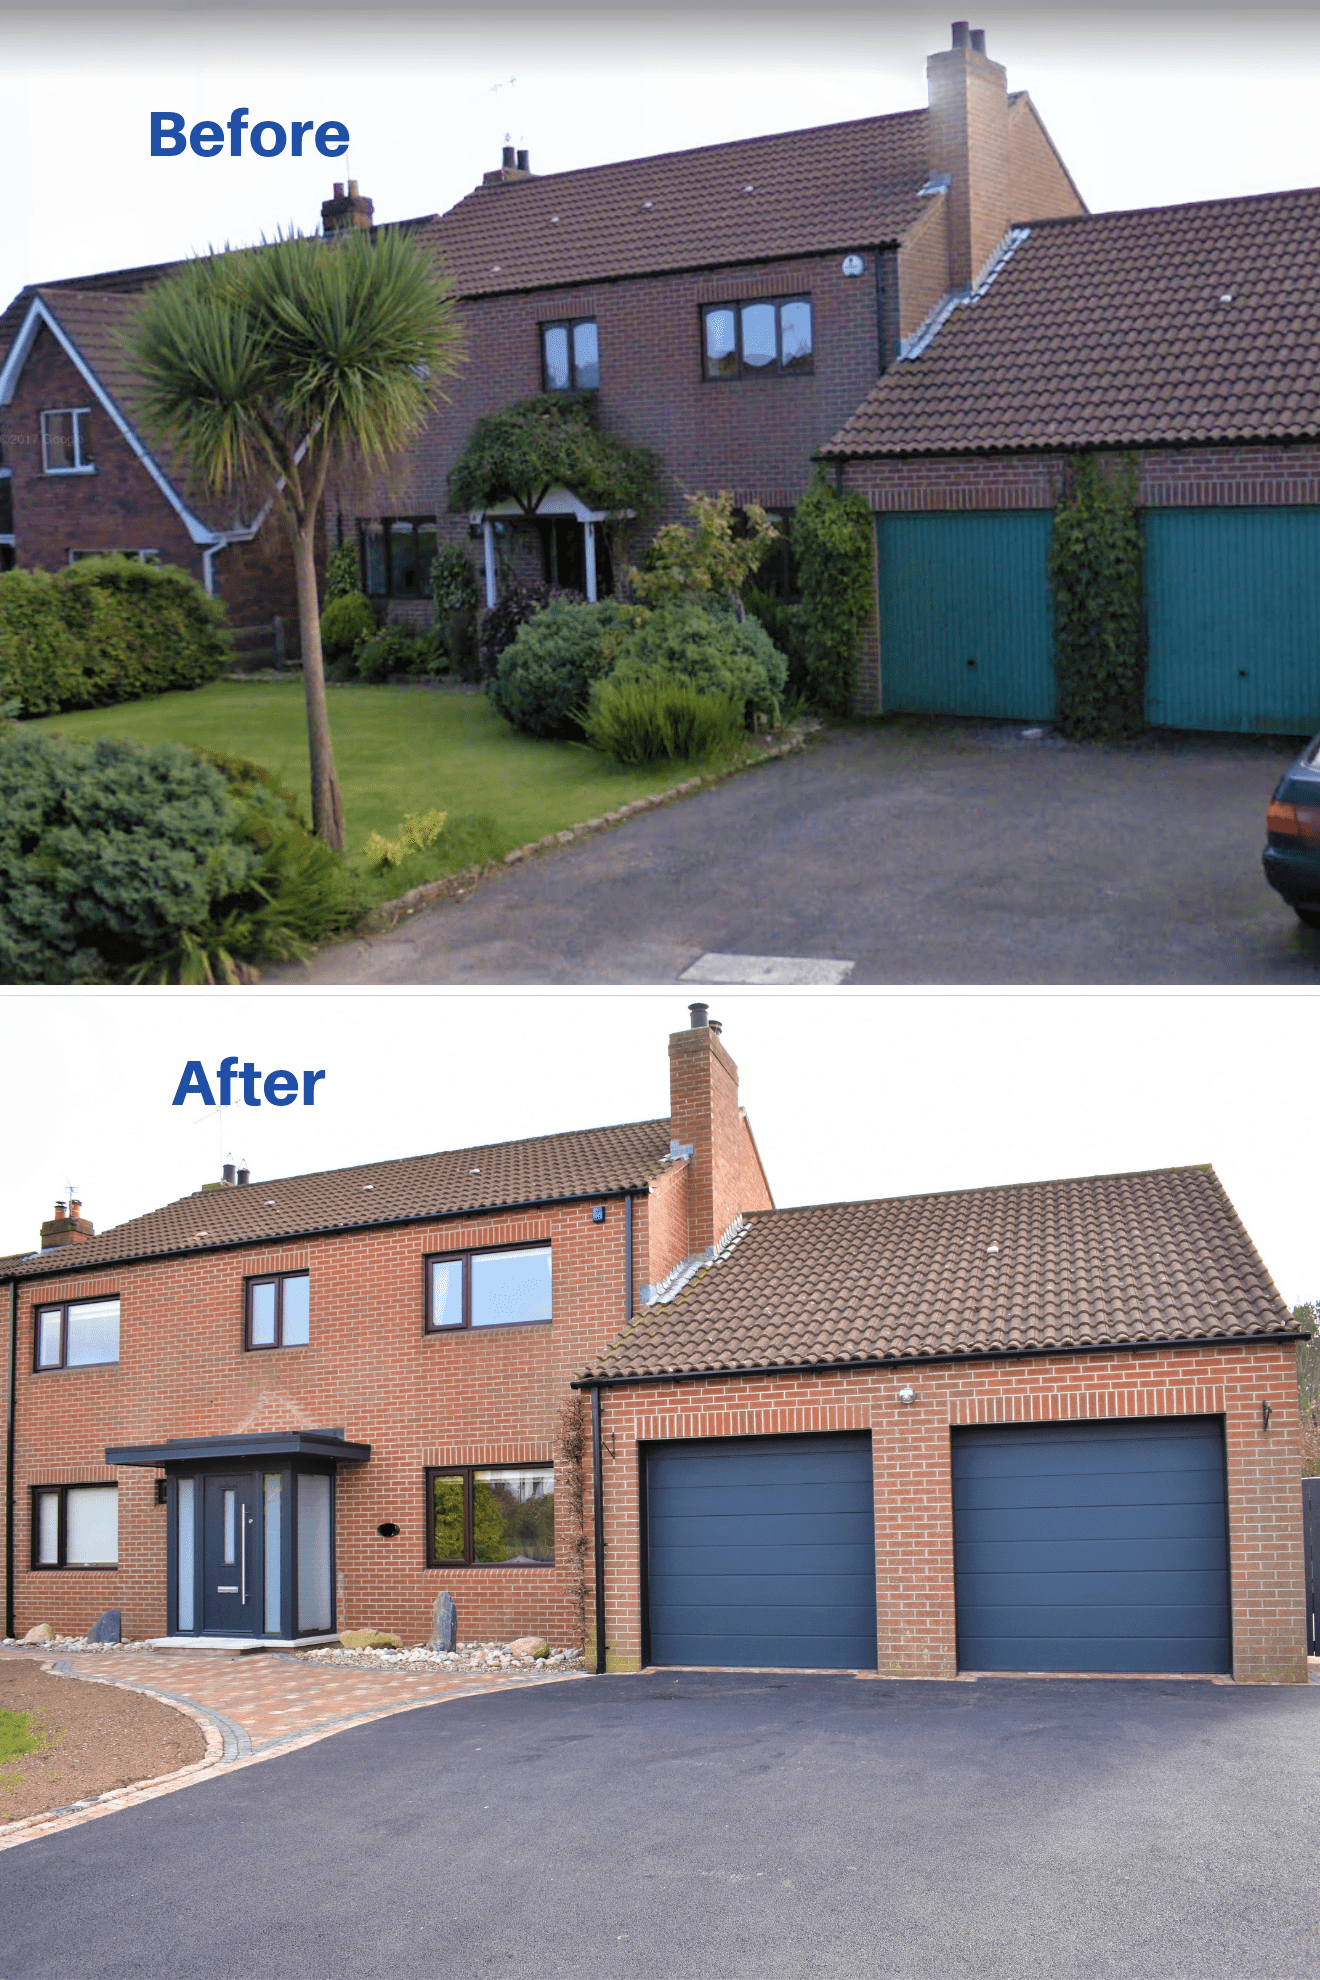 Before and after modern Porch